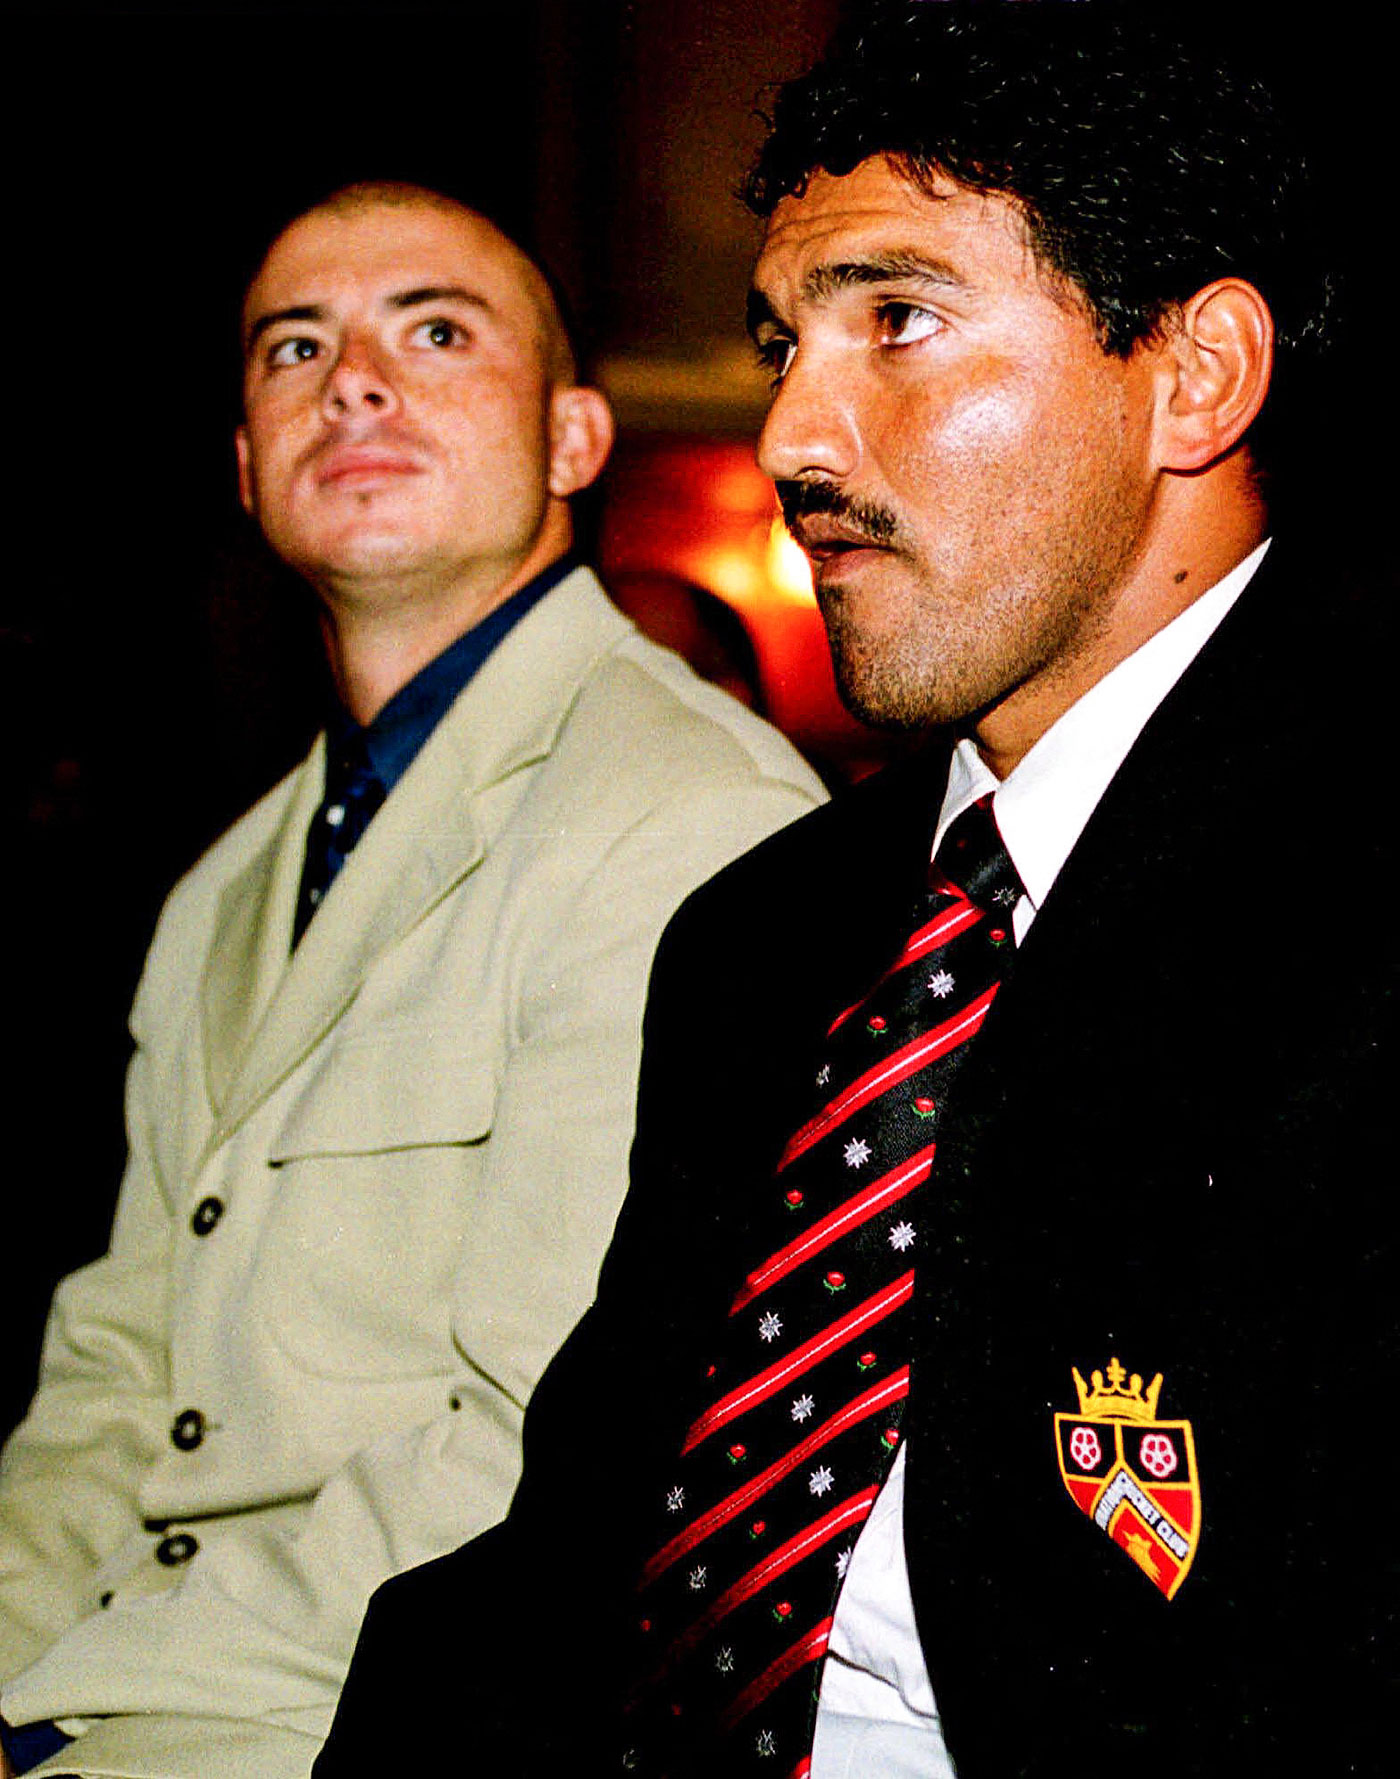 Different strokes: the outcomes were not the same for Herschelle Gibbs and Williams, seen here at match-fixing hearings in June 2000